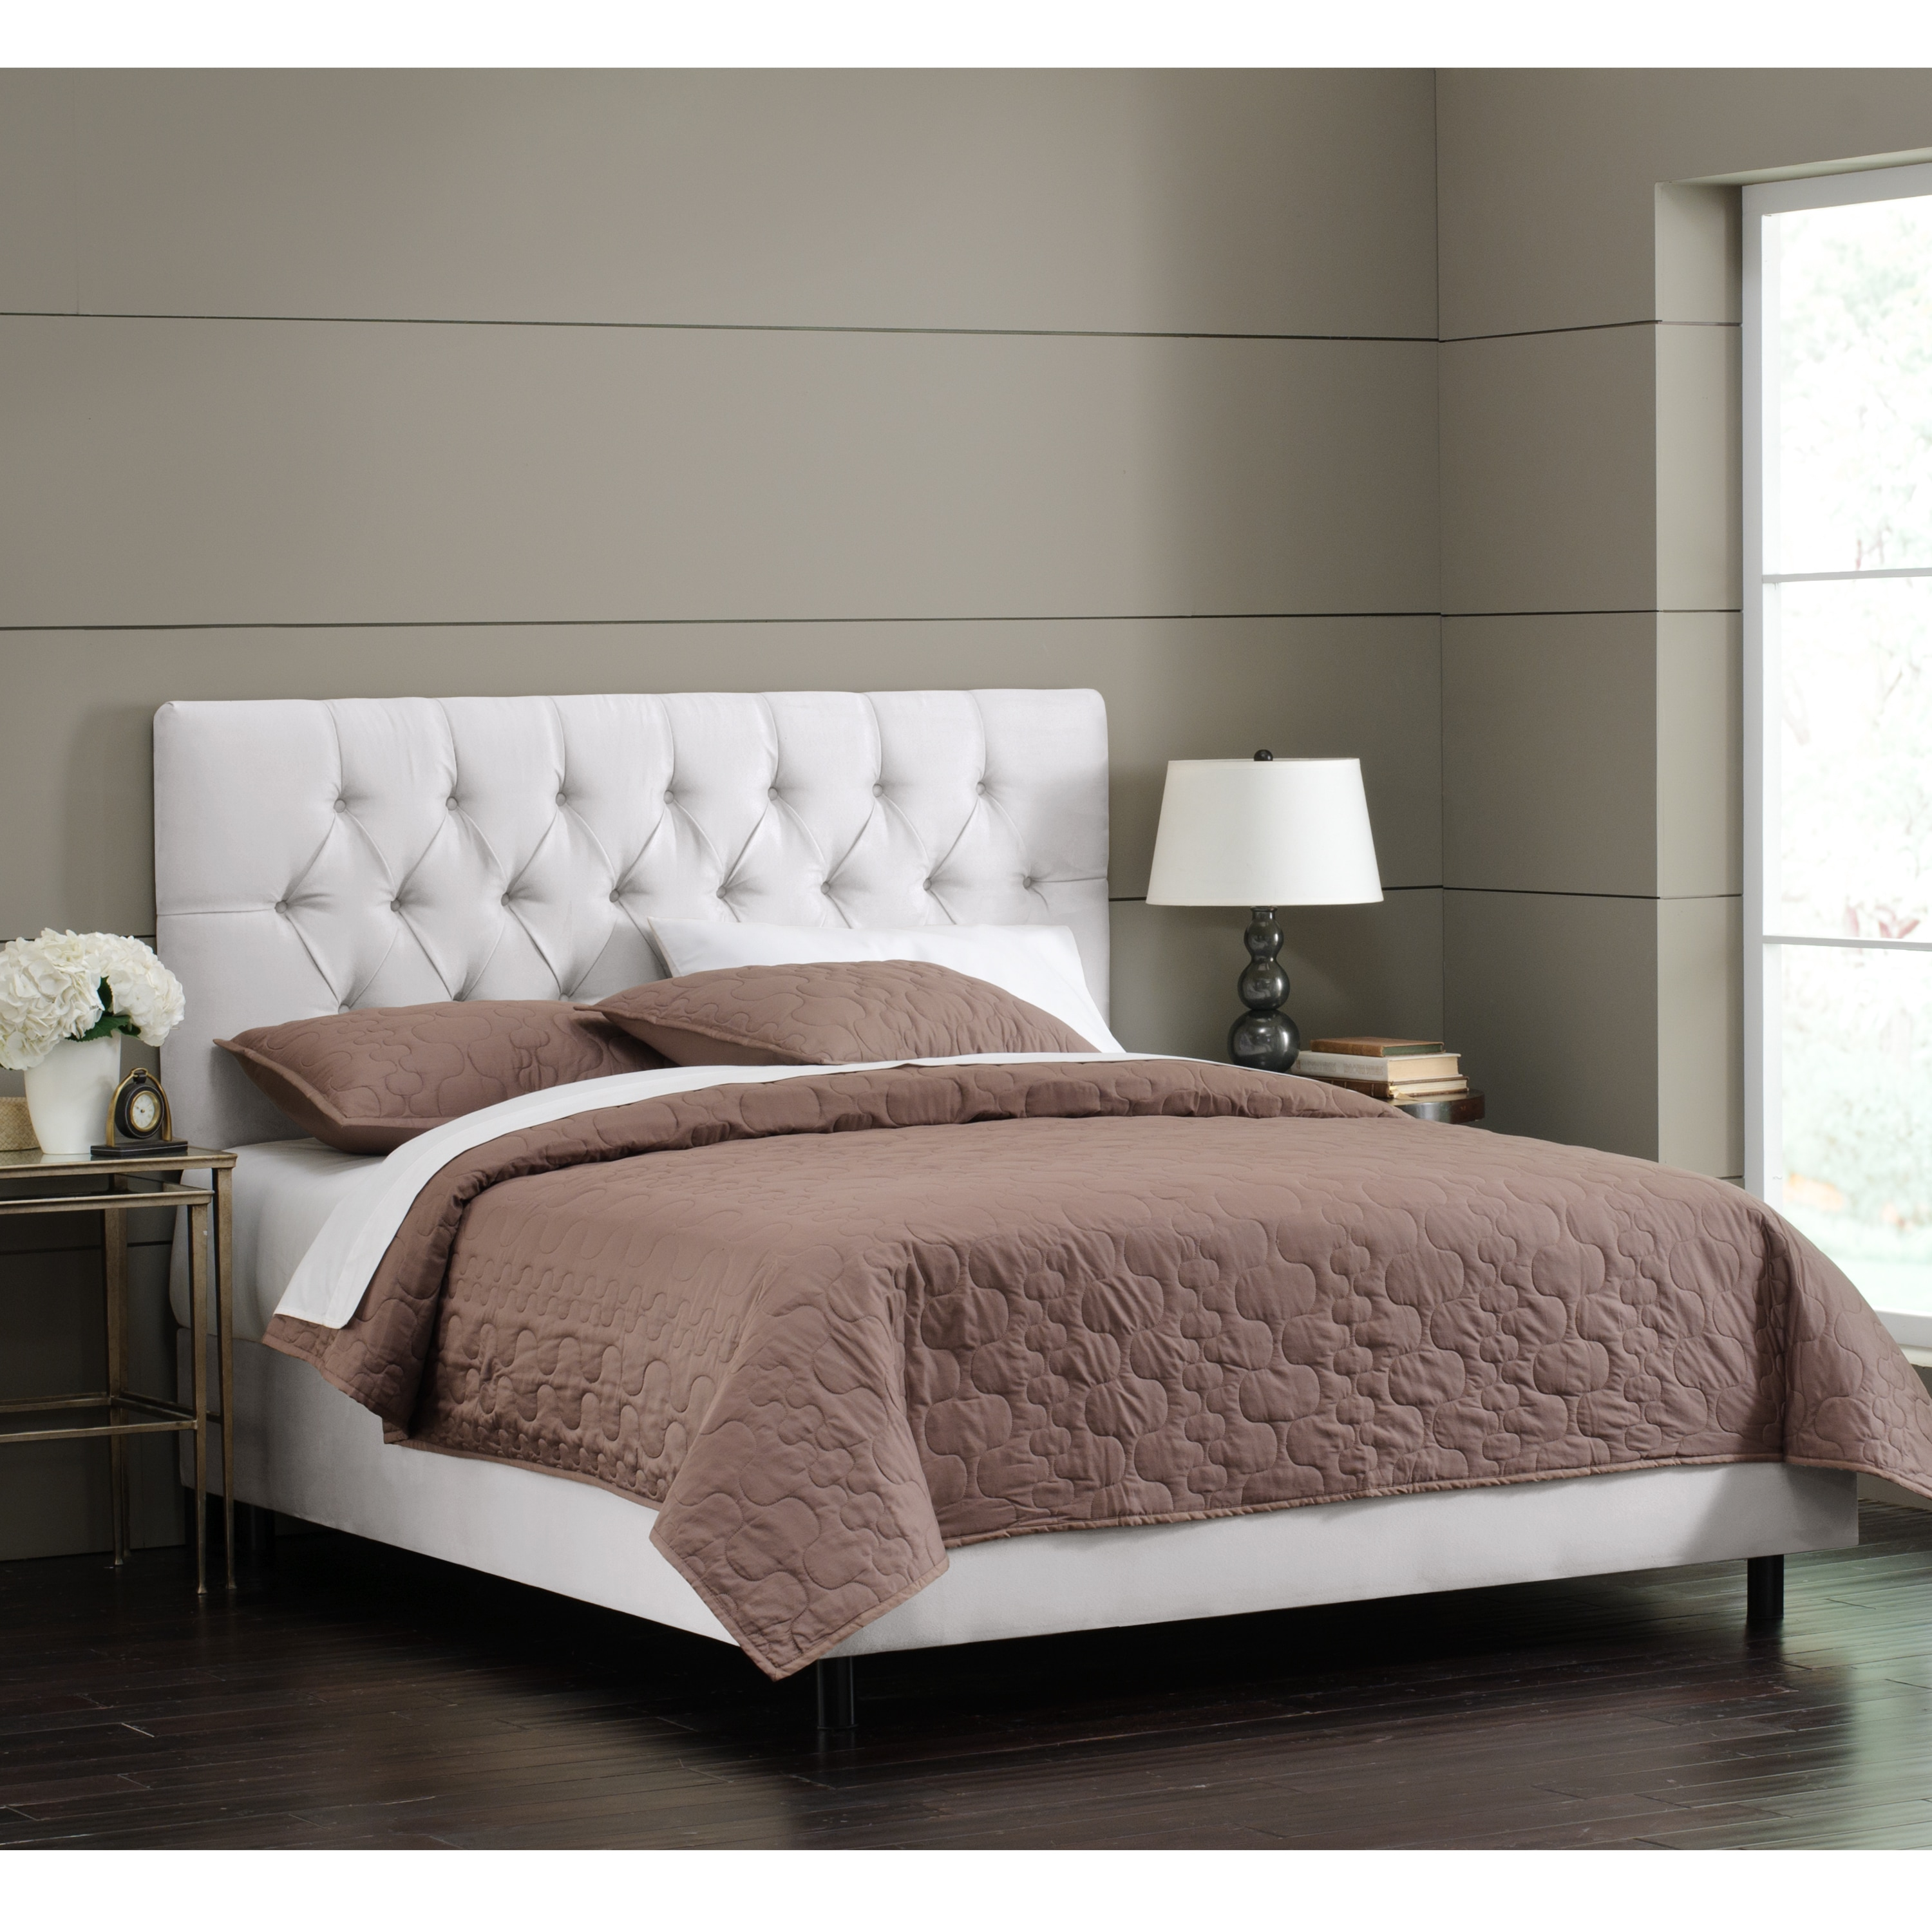 Shop Skyline Furniture White Velvet Tufted Bed Free Shipping Today